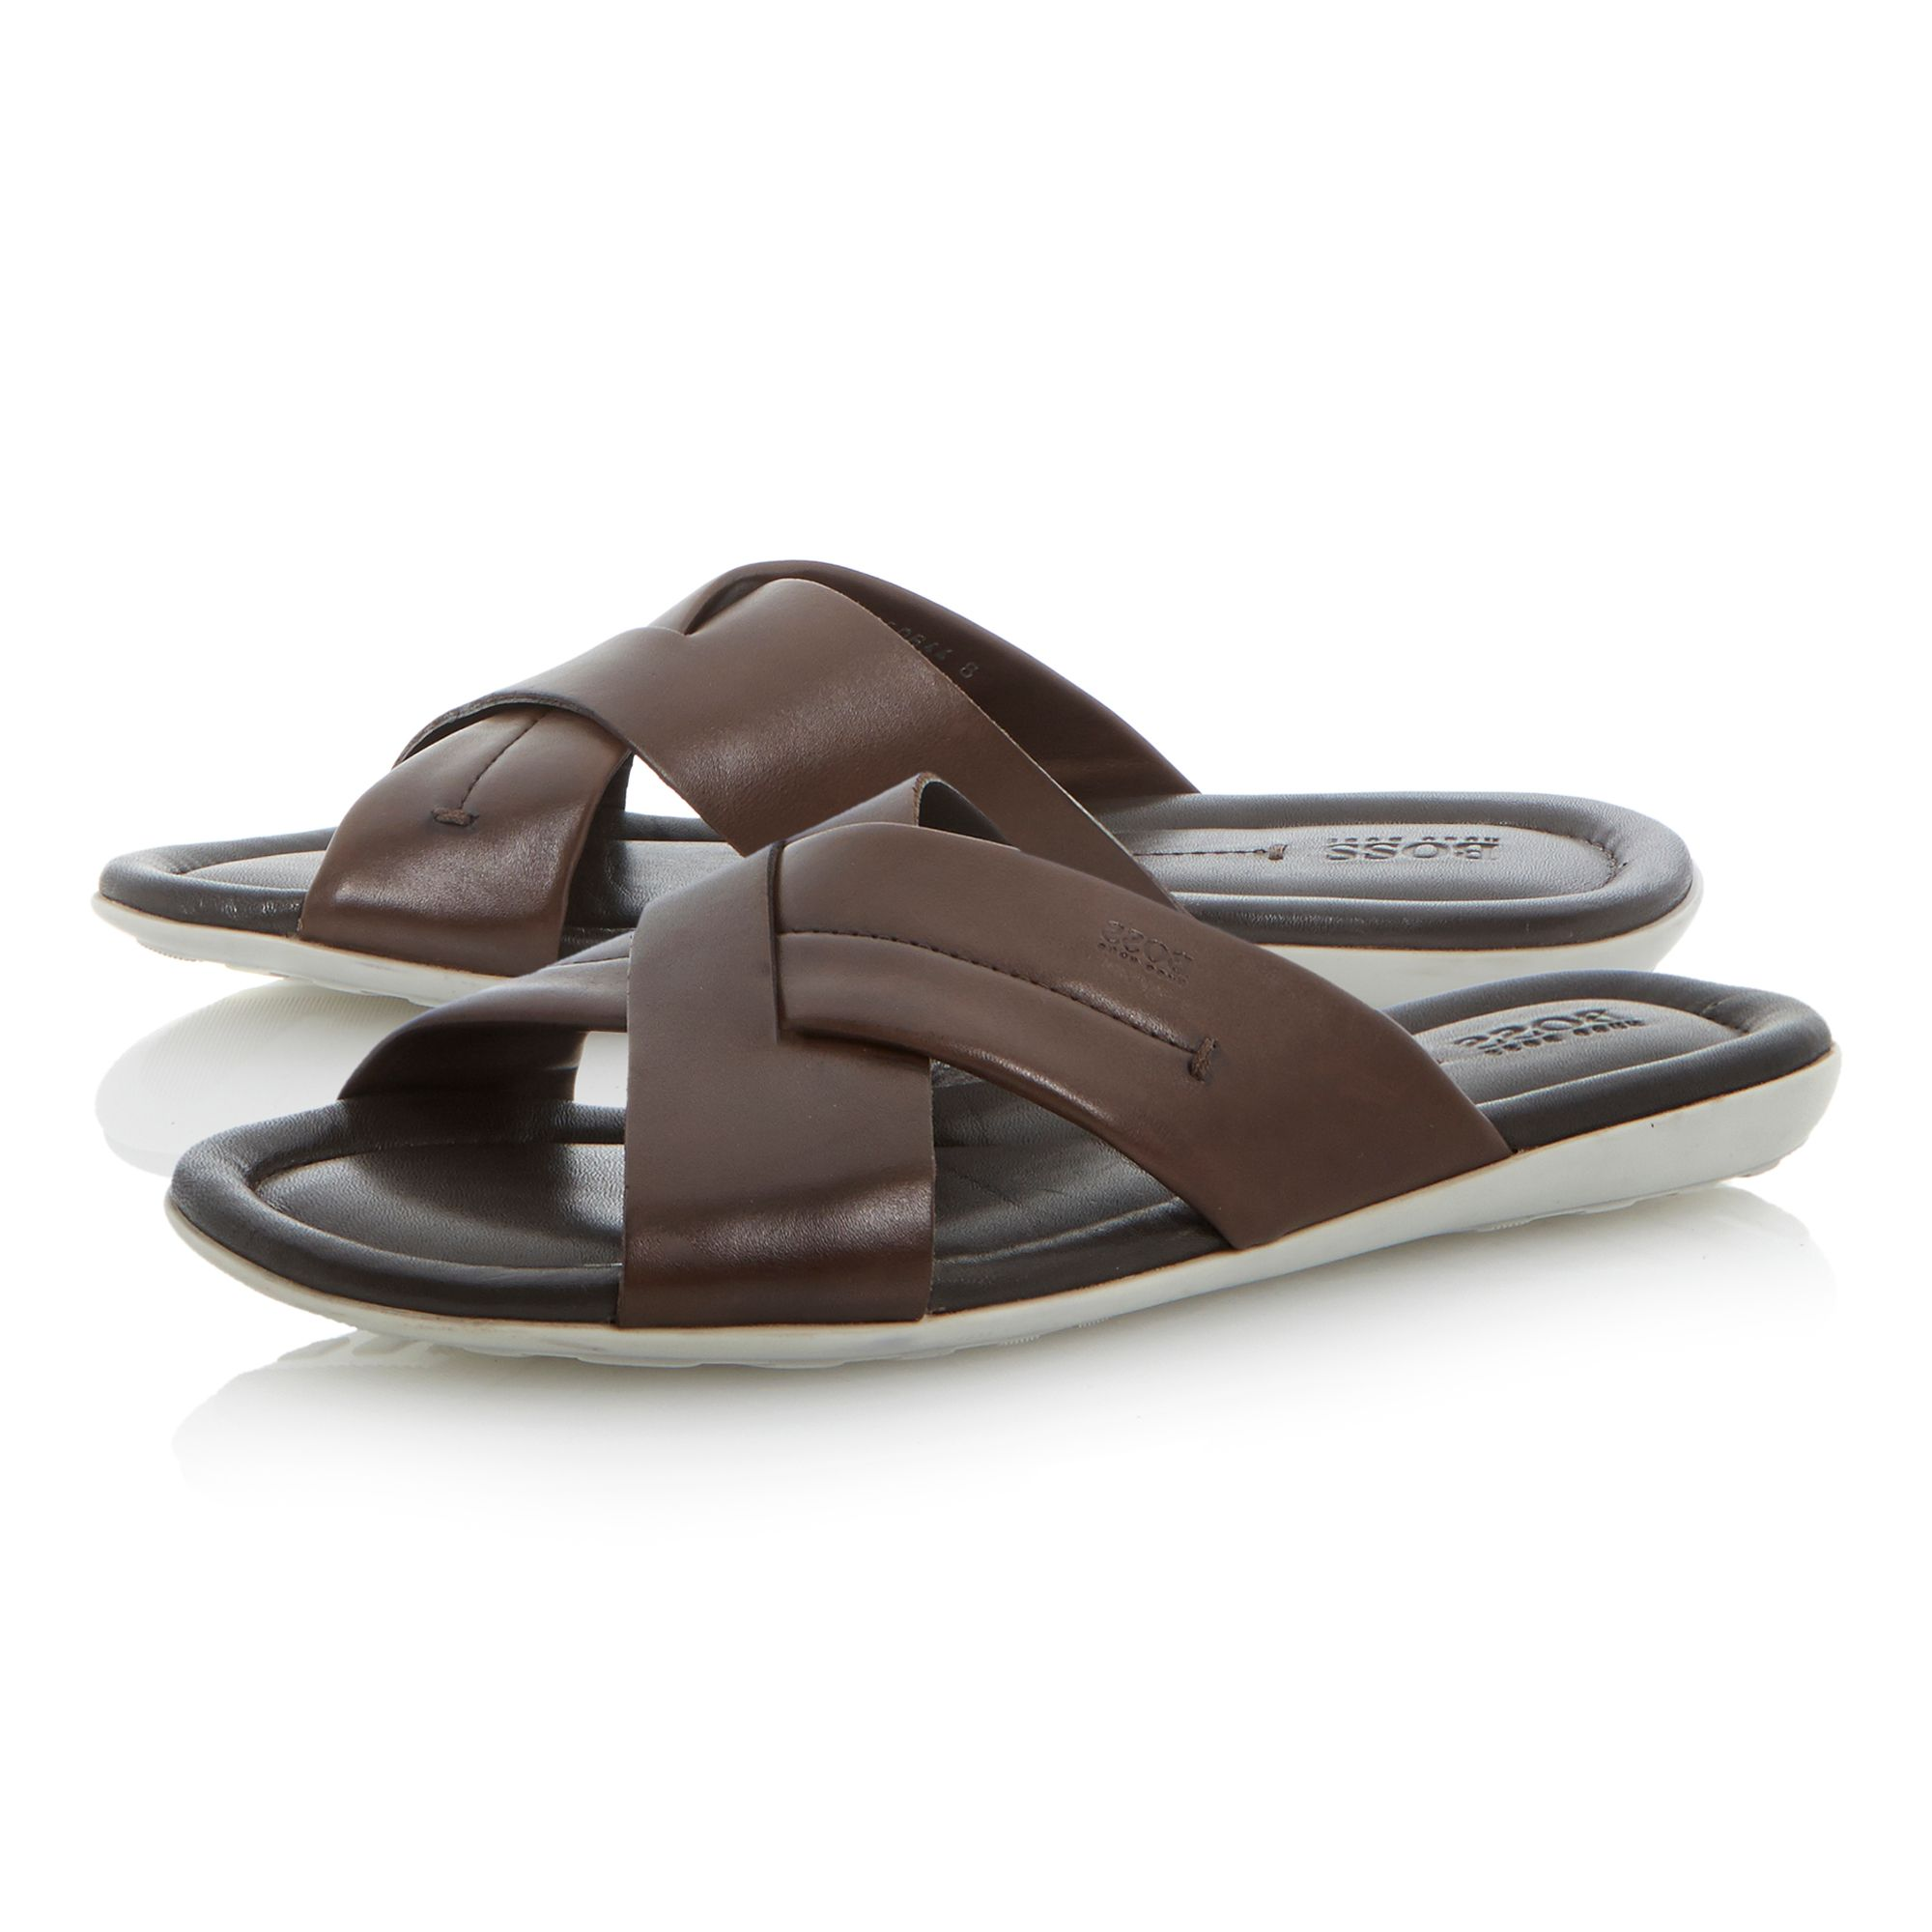 Palman leather crossover sandals